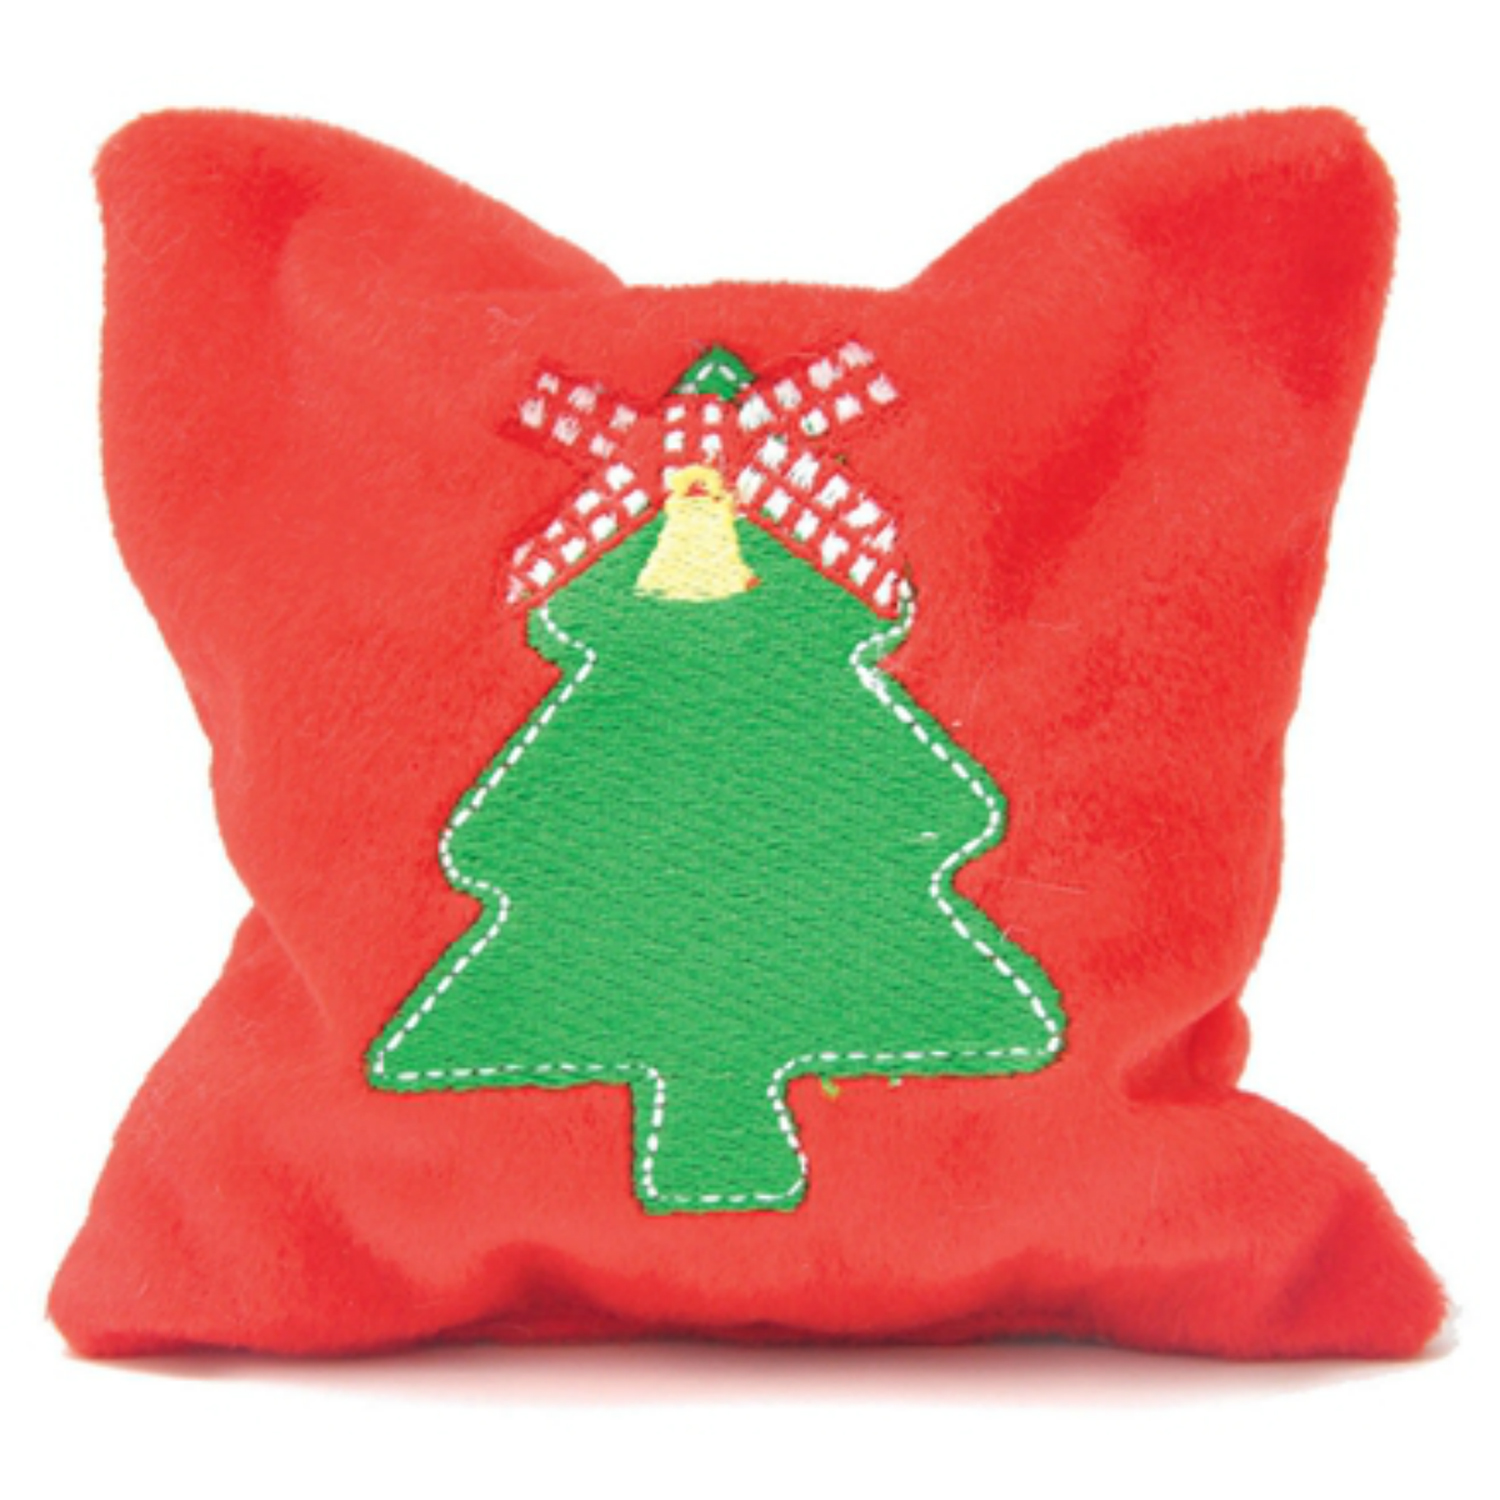 Bavarian Pillow Cat Toy - Jingle Bells with Same Day ...